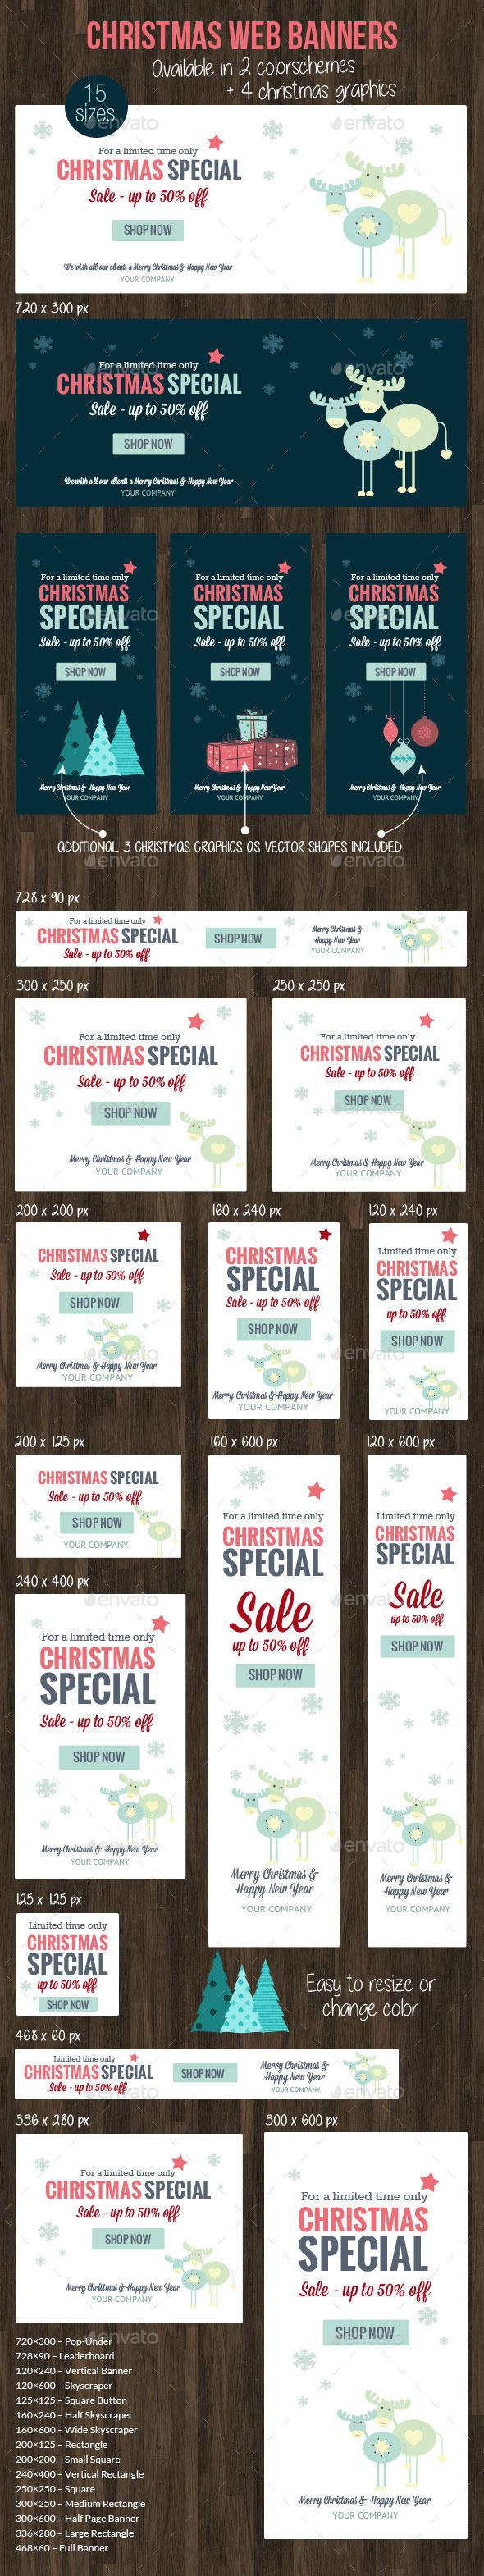 Christmas Web Banner 2015 Template PSD | Buy and Download: http://graphicriver.net/item/christmas-web-banner-2015/9698881?WT.oss_phrase=&WT.oss_rank=4&WT.z_author=corrella&WT.ac=search_thumb&ref=ksioks